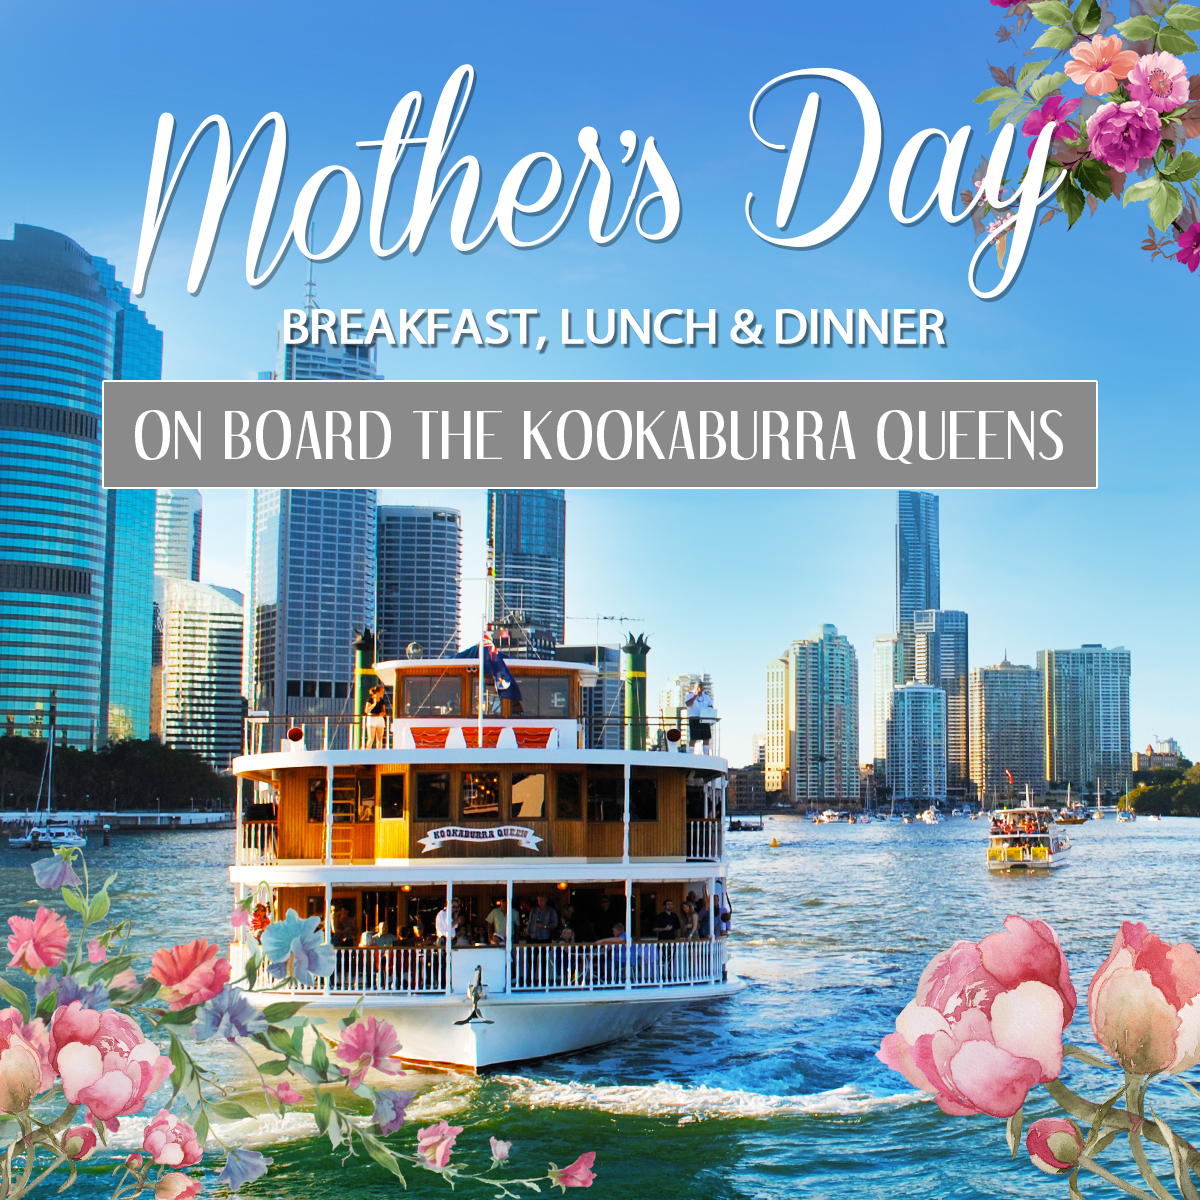 Mothers Day Breakfast Cruise